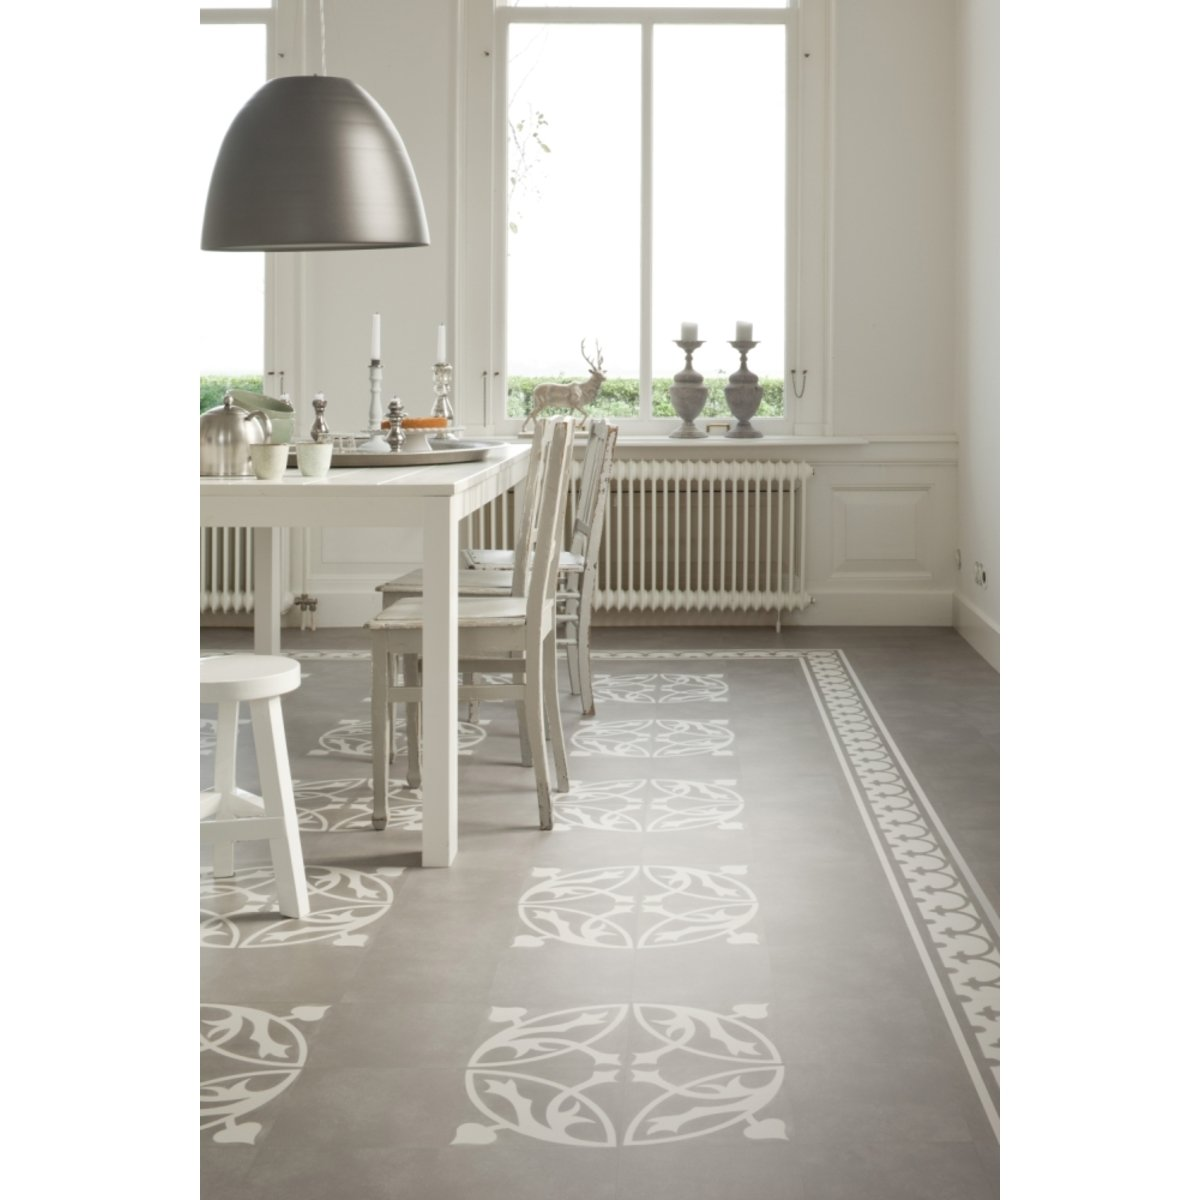 Flexxfloors premium collection pvc vloer tegeldessin tegel grijs 1144998 for Tegel pvc imitatie tegel cement